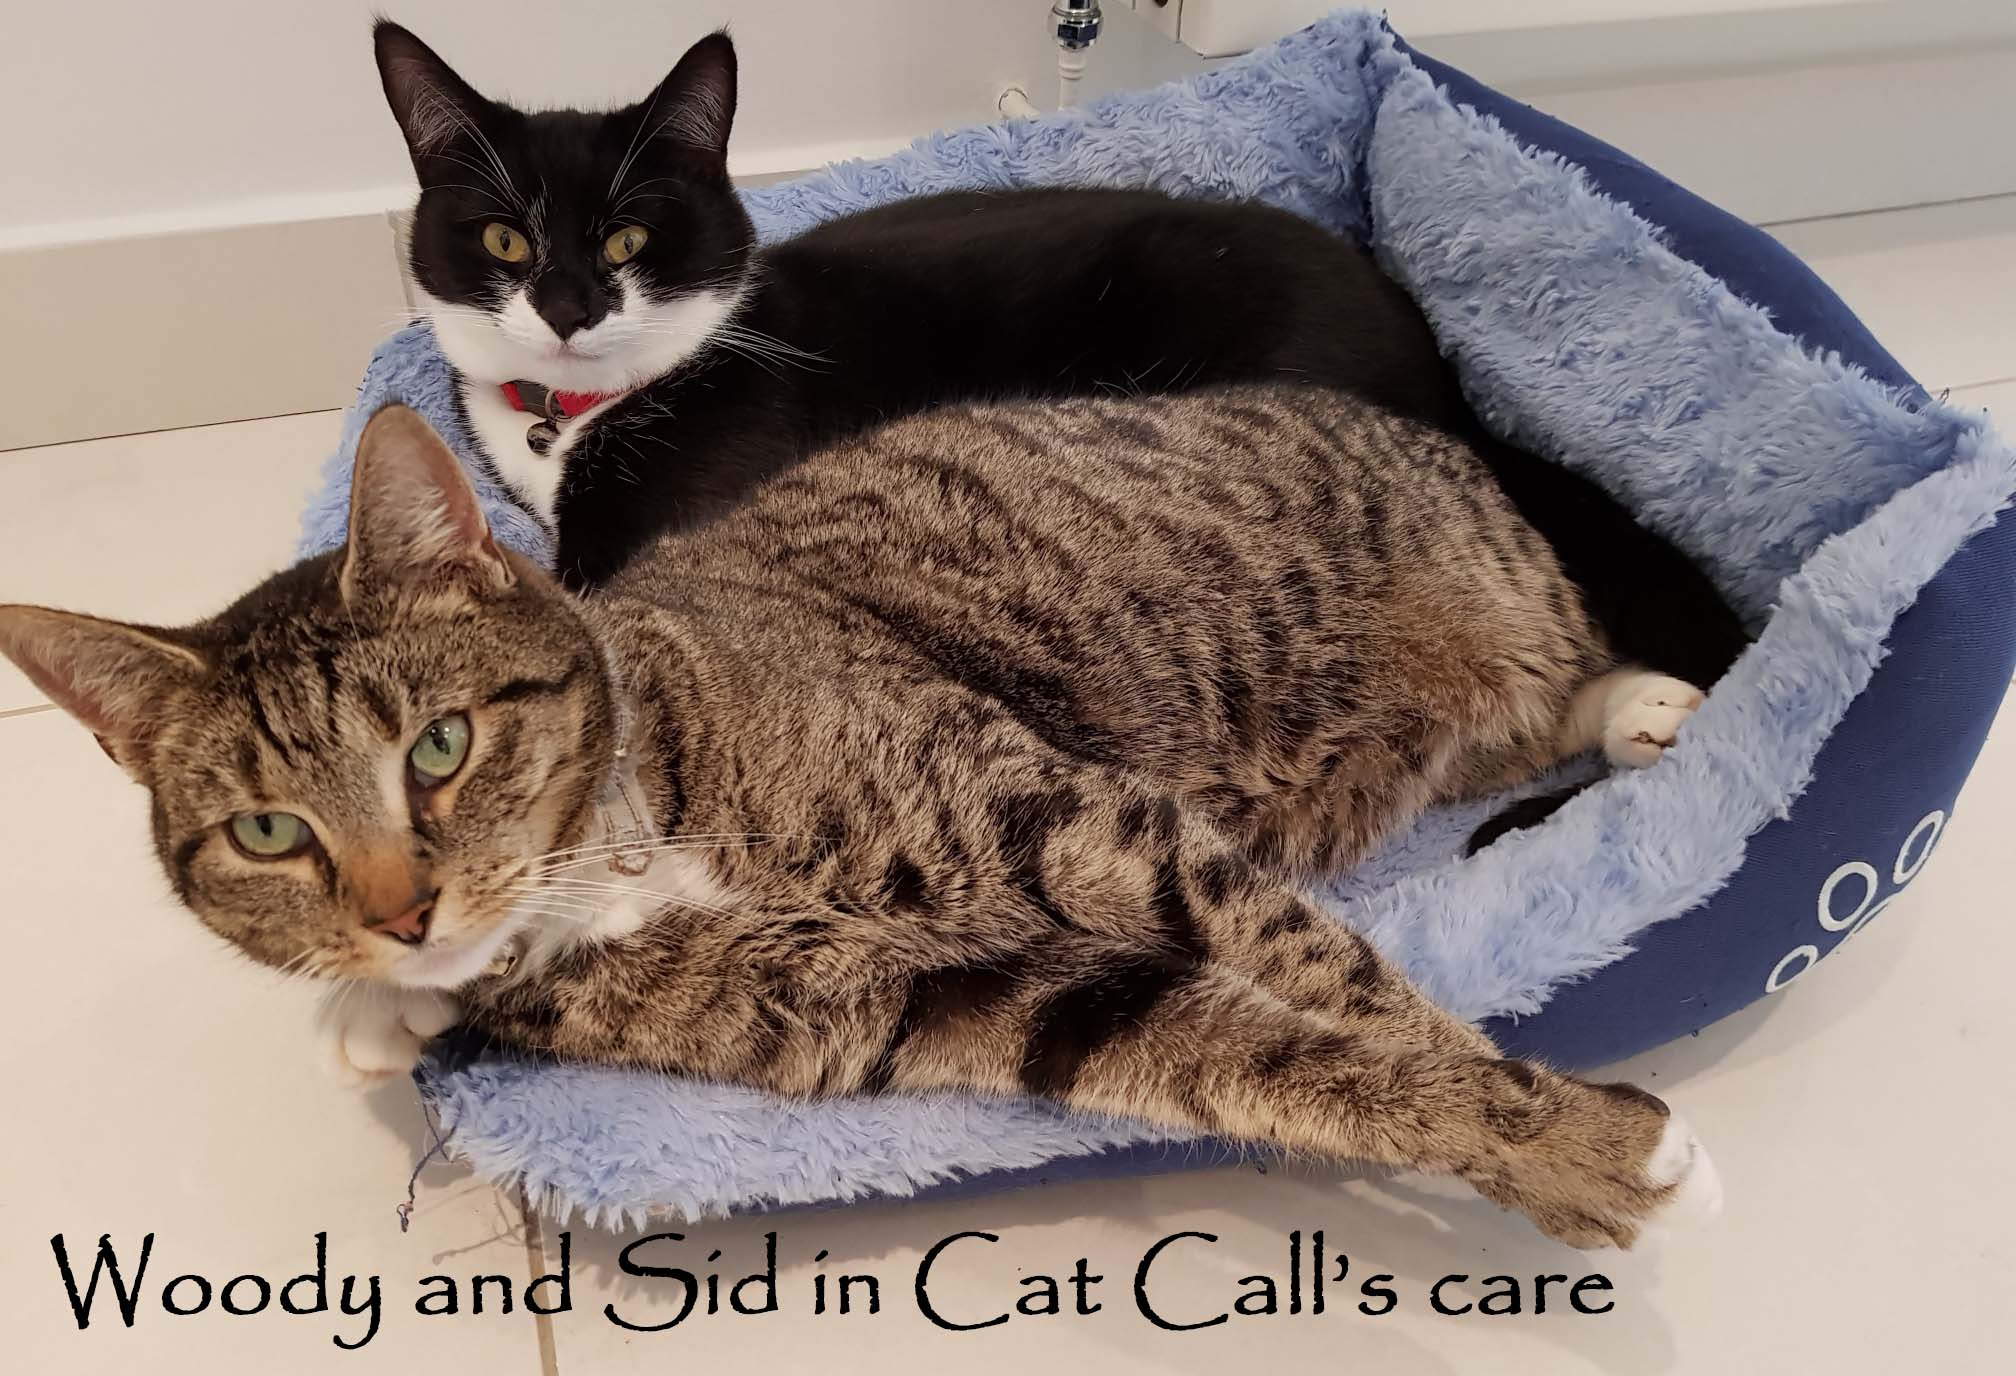 Cat Call caring for Cats